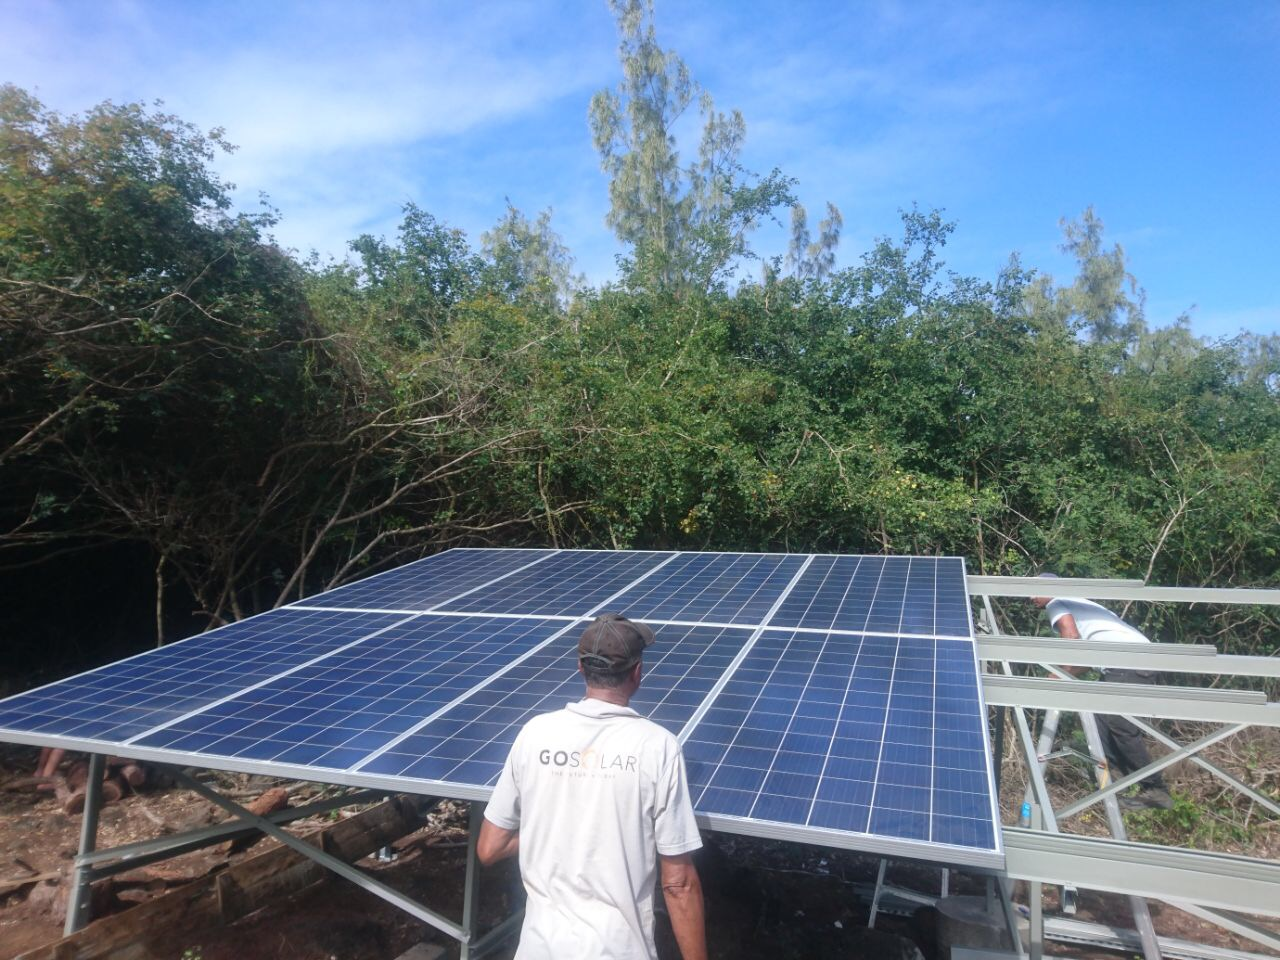 LUX Executes 100% Renewable Energy Project in Mauritius